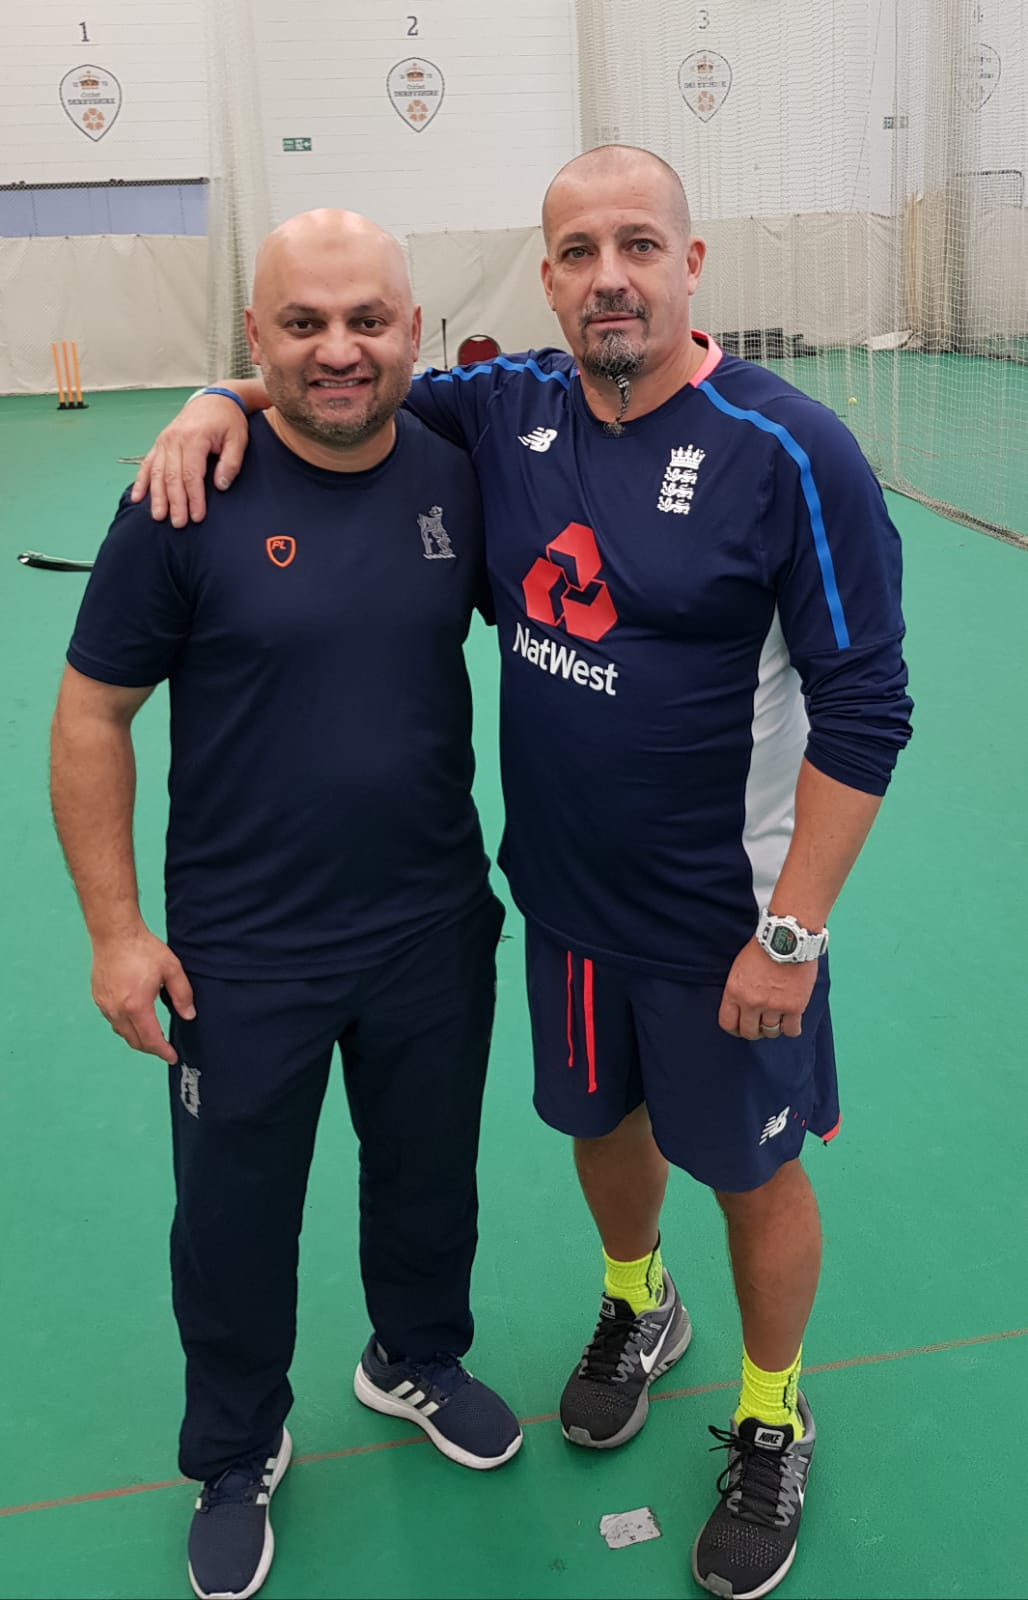 Sohail working on power hitting techniques with Julian Wood. England power hitting coach.